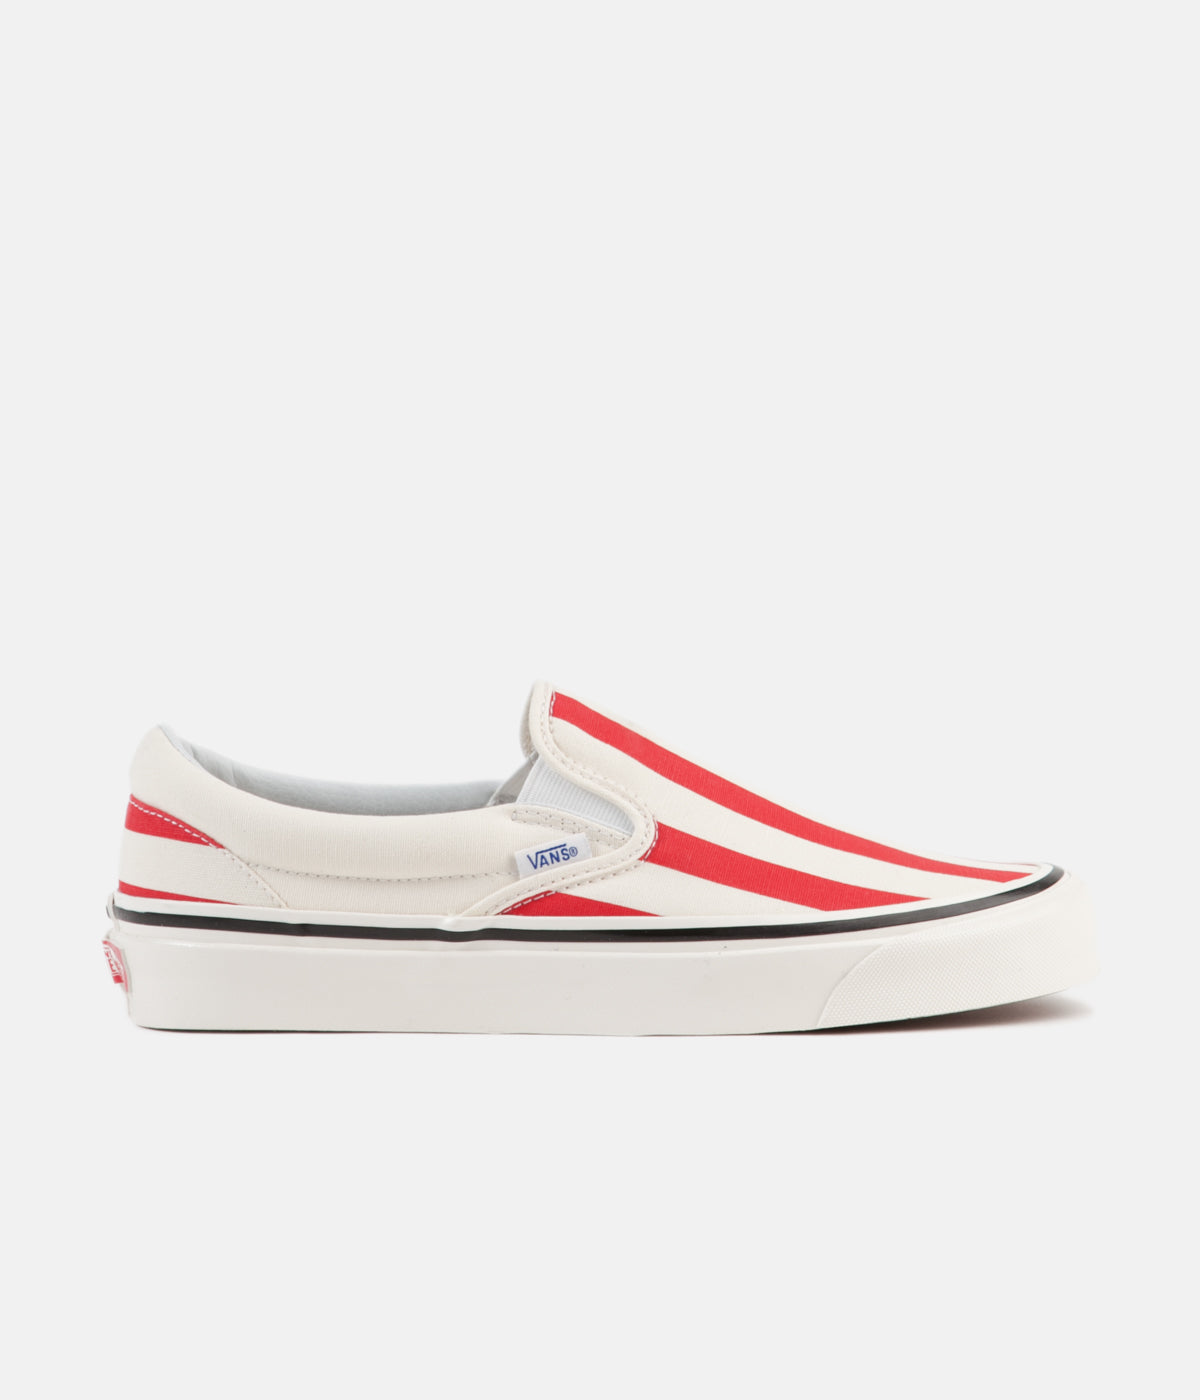 Vans Classic Slip-On 98 DX Anaheim Factory Shoes - OG White / OG Red / Big Stripes